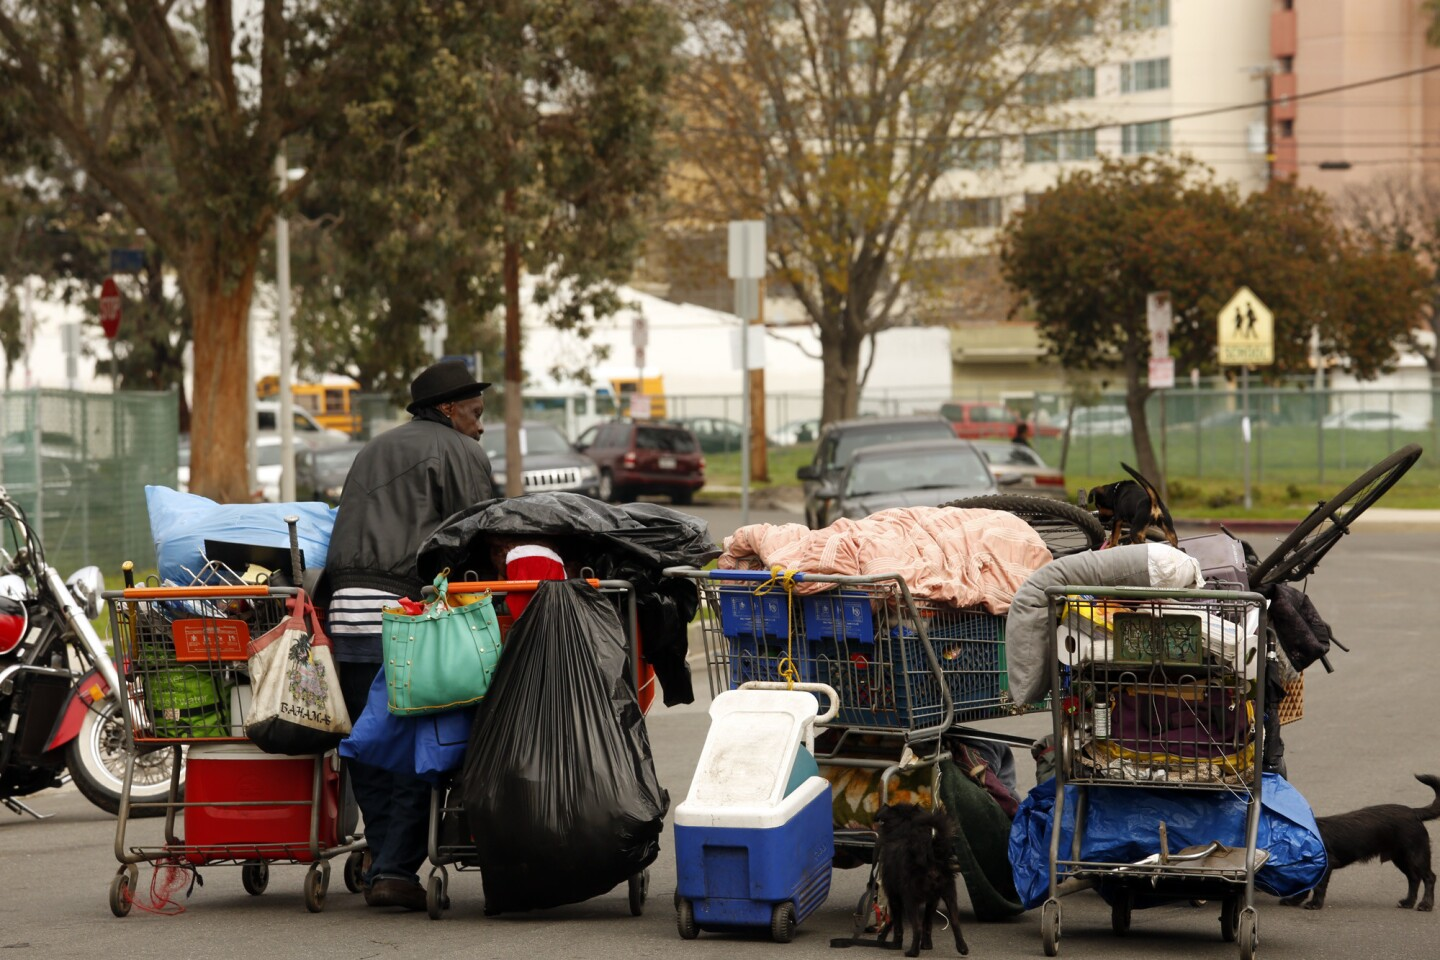 Ricky Riller carries his belongings and dogs in shopping carts before sanitation workers sweep the homeless encampments in the Manchester Square neighborhood in Los Angeles.